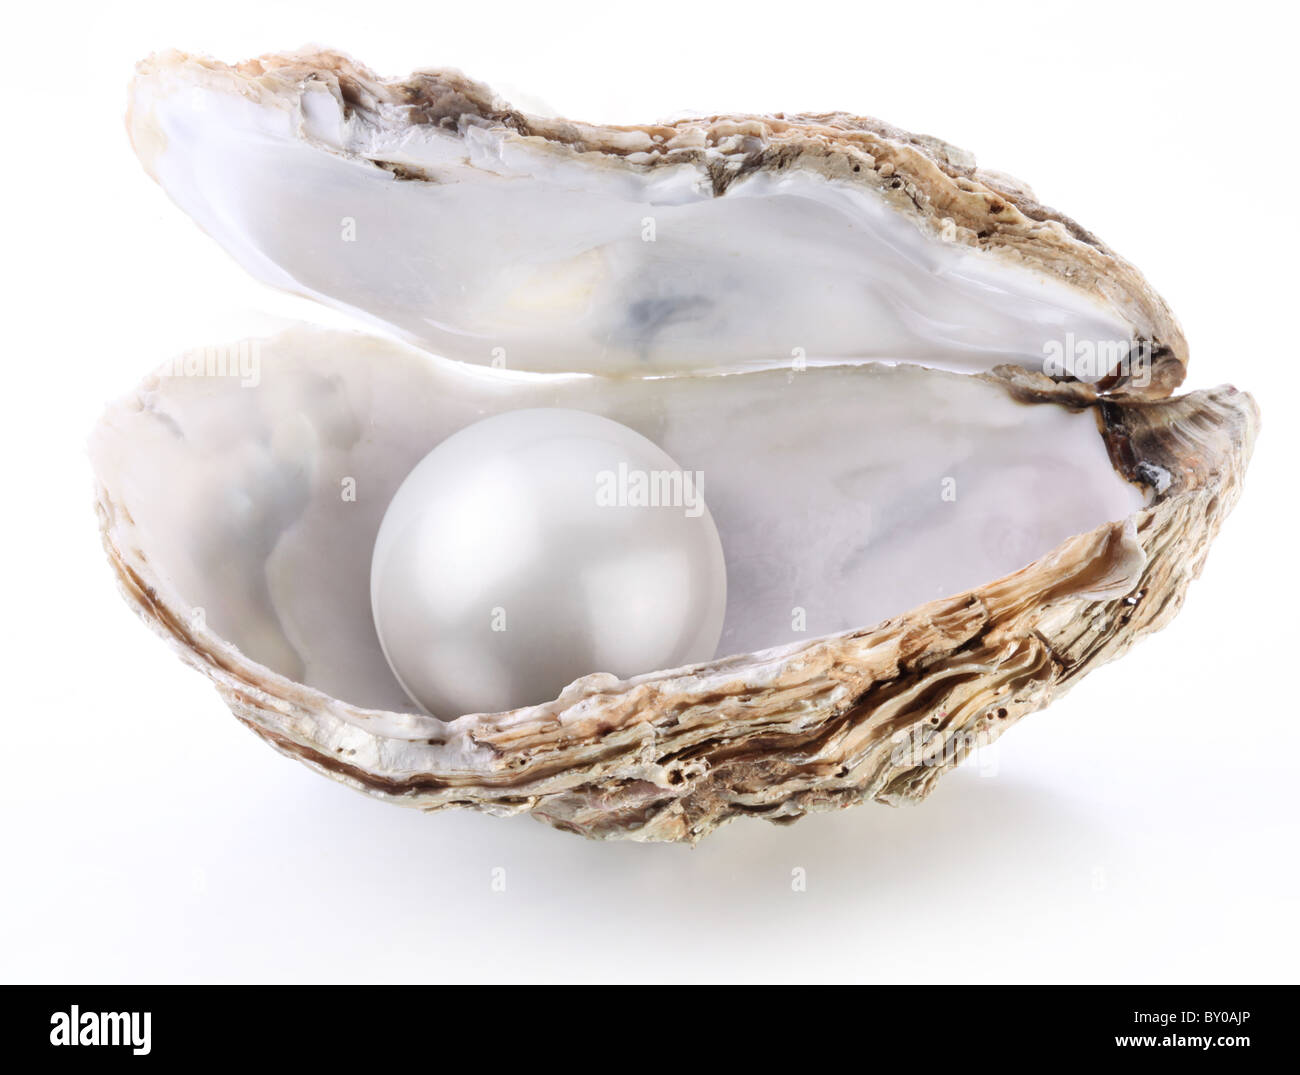 Image of a white pearl in a shell on a white background. - Stock Image